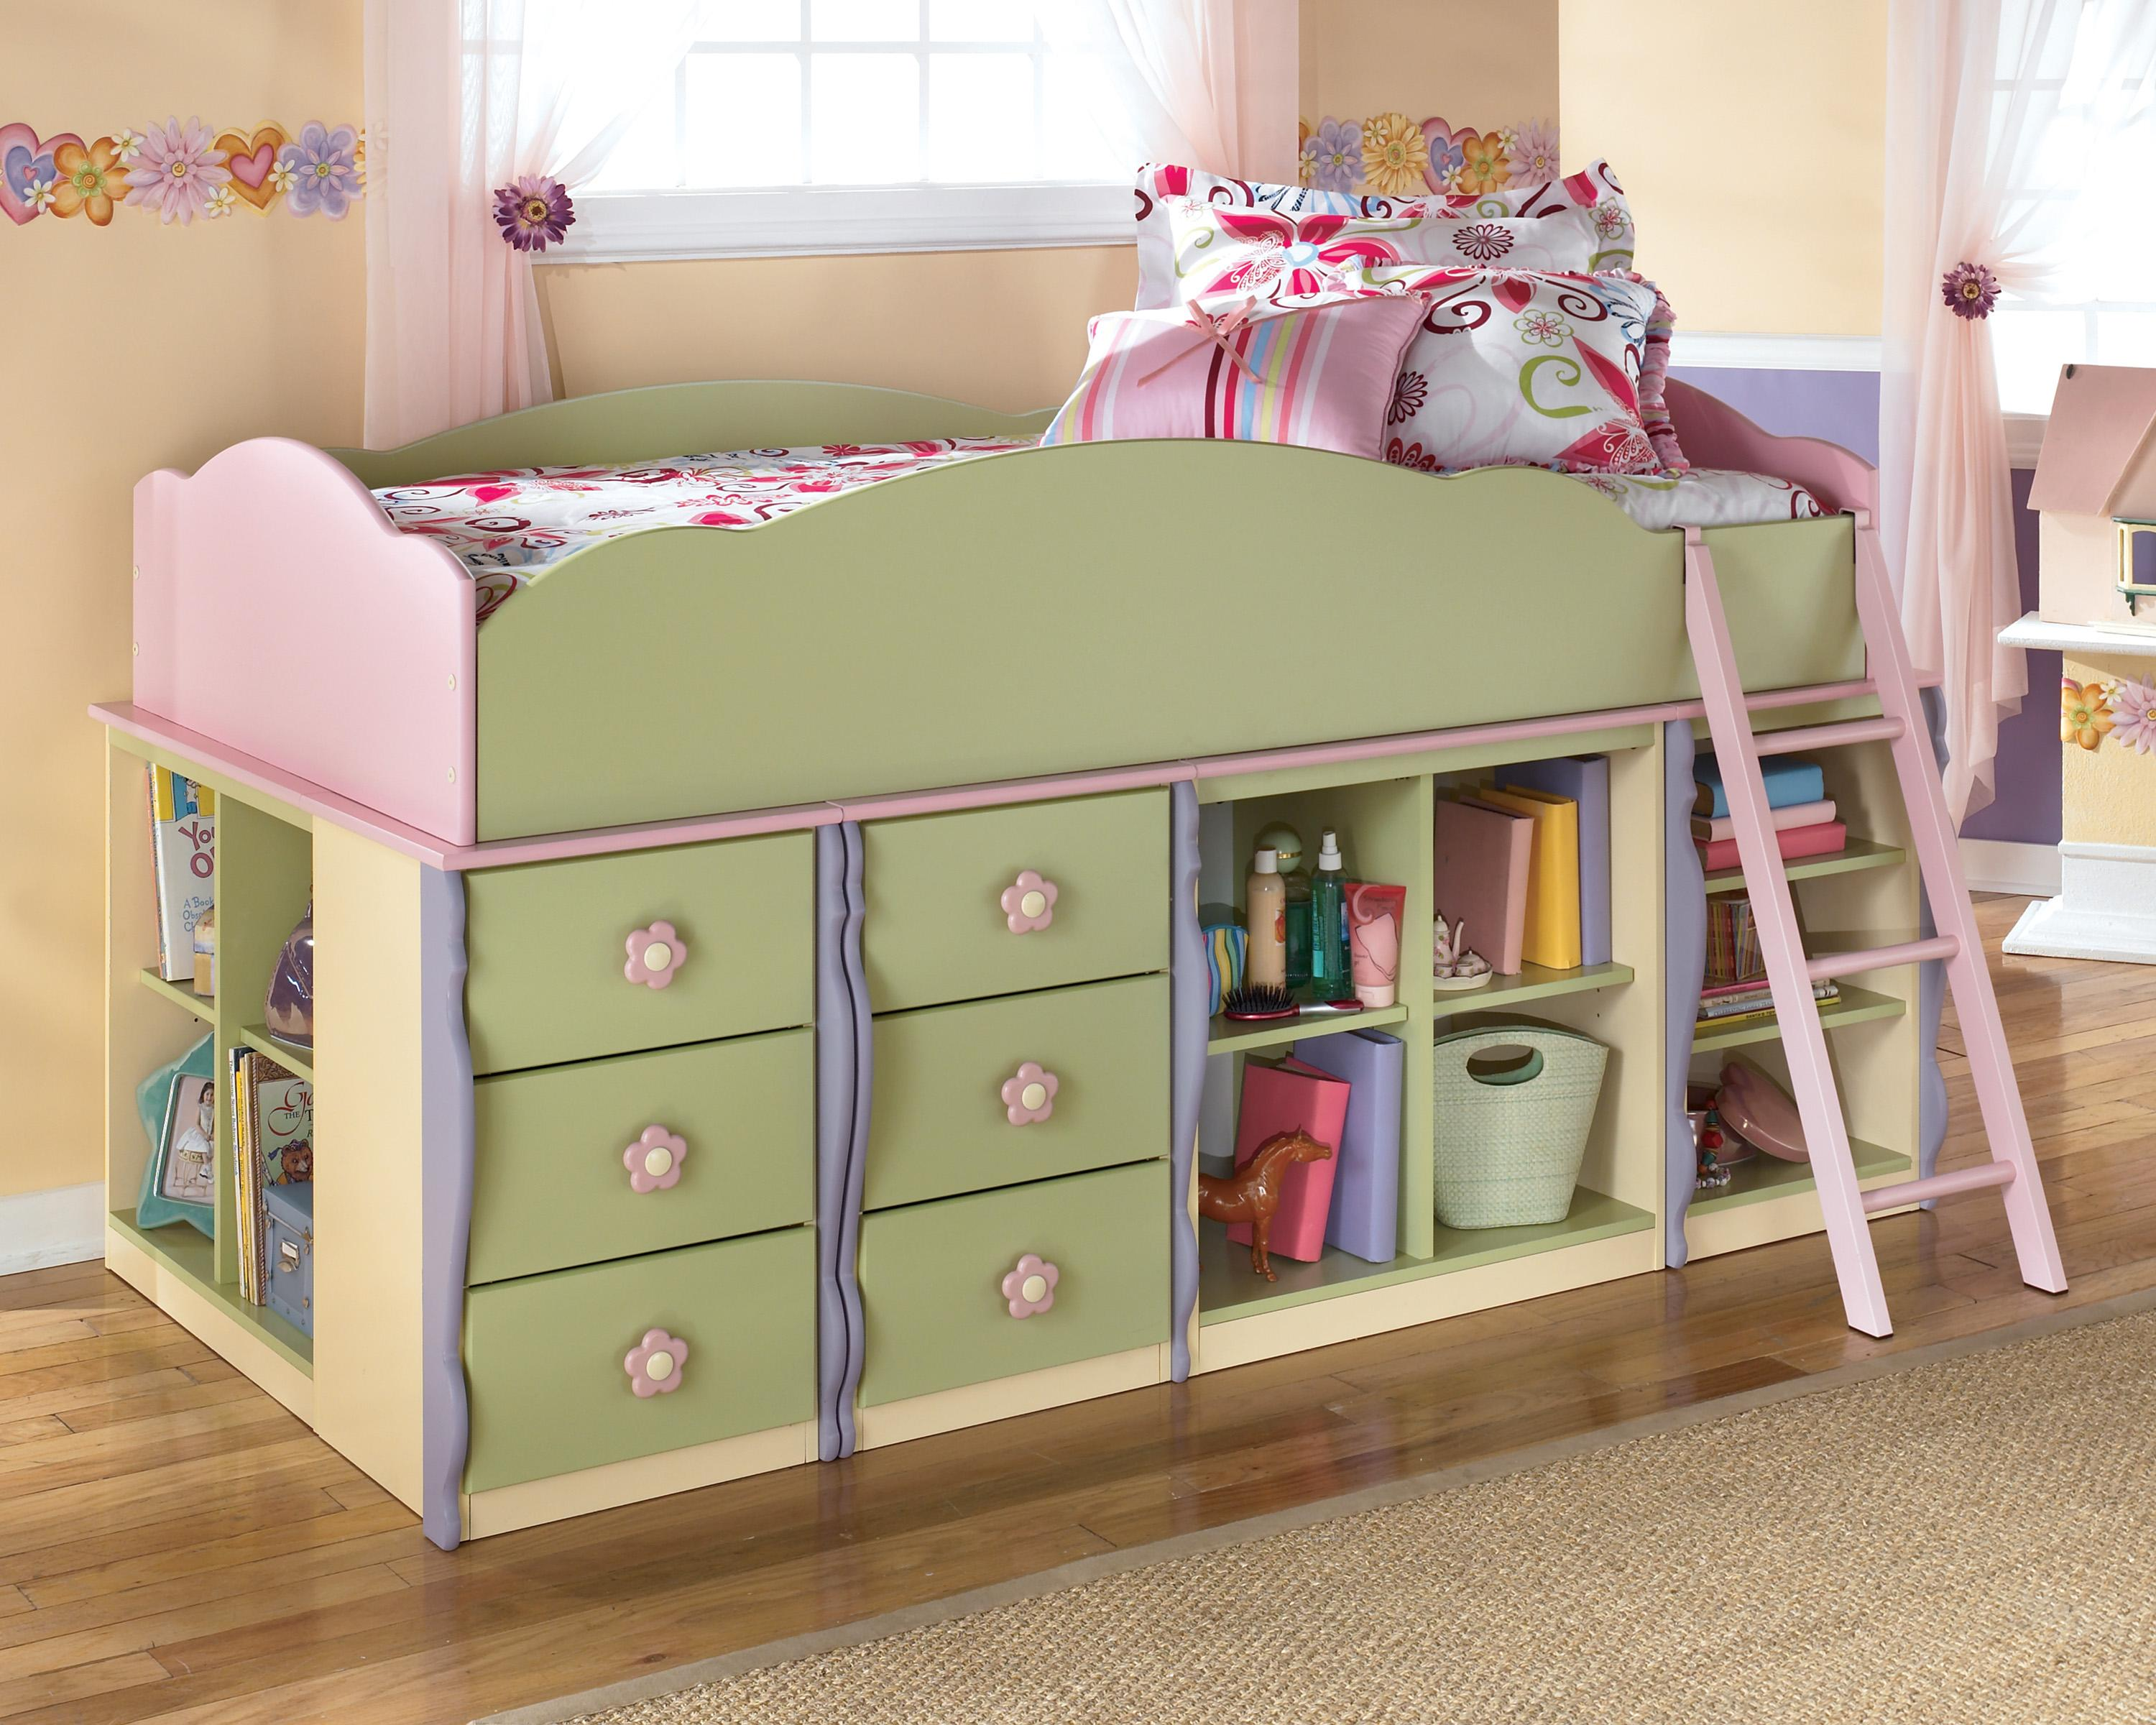 Levitz Bedroom Furniture Signature Design By Ashley Doll House Modular Loft Bed W Underbed